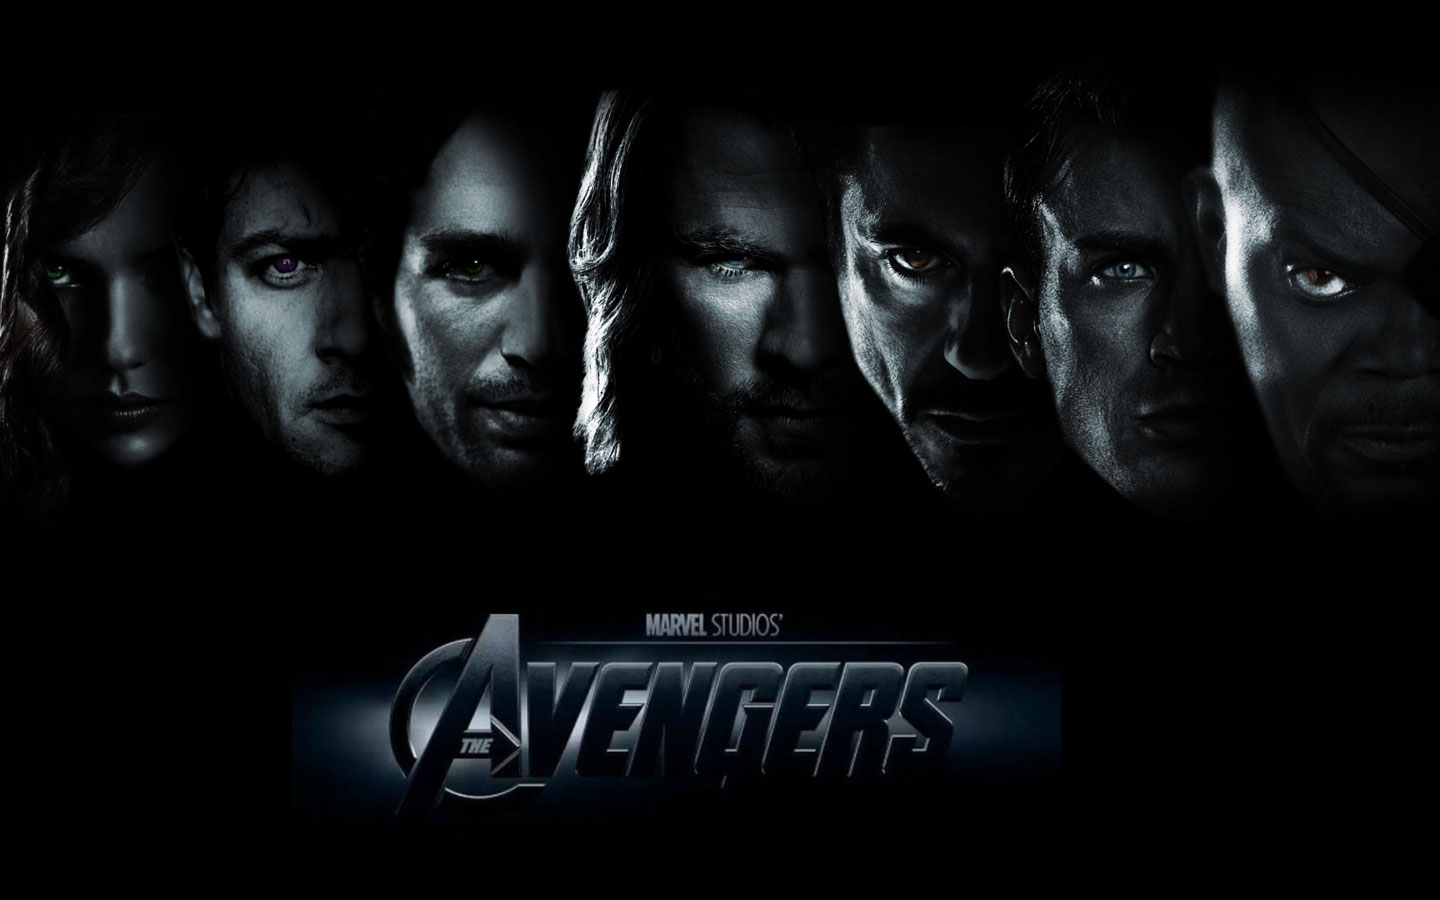 The Avengers Wallpapers Gadgets Talk And Life HD Wallpapers Download Free Images Wallpaper [1000image.com]